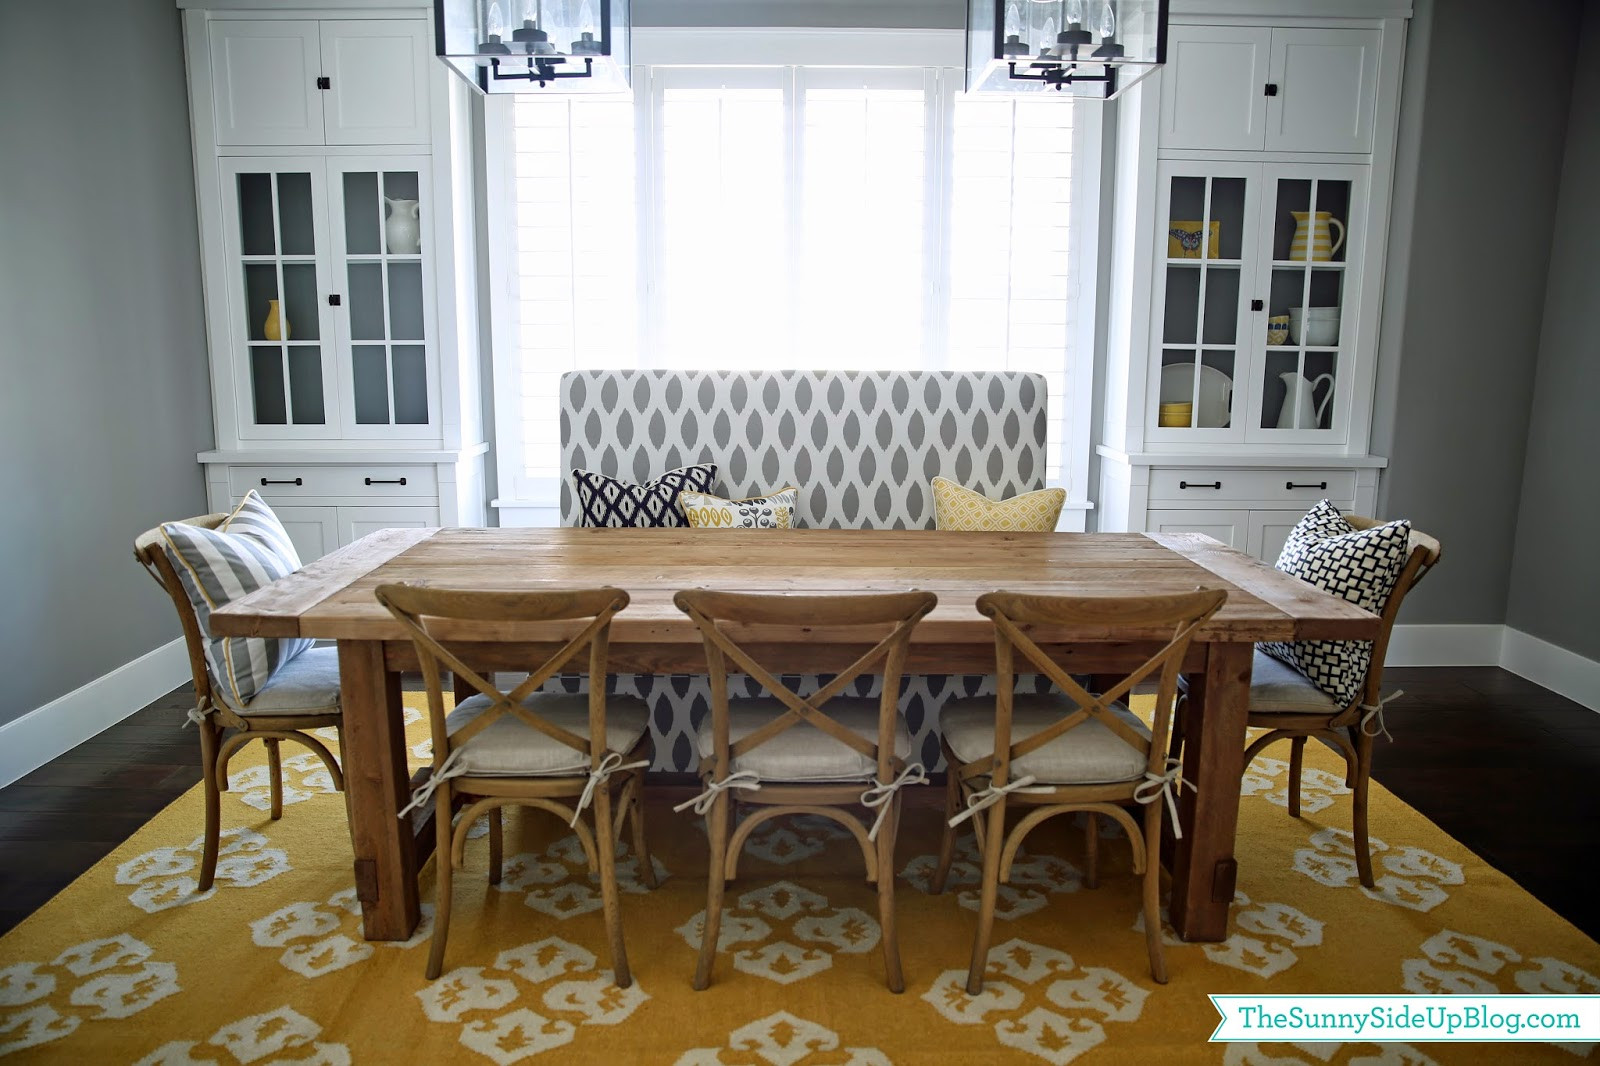 Best ideas about Dining Room Bench . Save or Pin Dining room decor update bench chairs pillows The Now.